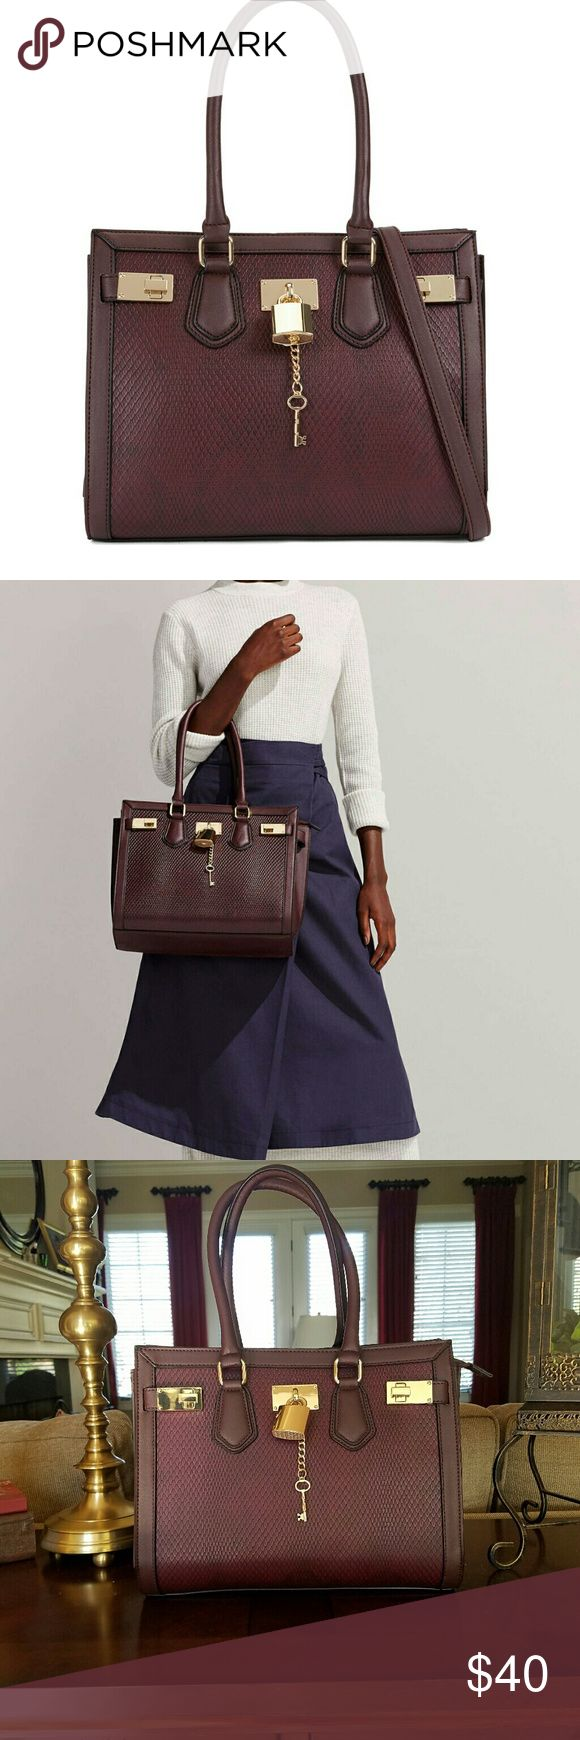 Aldo Gilliam burgundy purse (NEW) Material: Synthetic  Sleek gold metal accents shine against the tonal textured finish of this perfectly sized shoulder bag. - Shoulder bag. - Top zipper closure. - Decorative metal ornament.  - Double handle. - Width: 13 in. - Depth: 6.3 in. - Height: 9.1 in. Aldo Bags Shoulder Bags